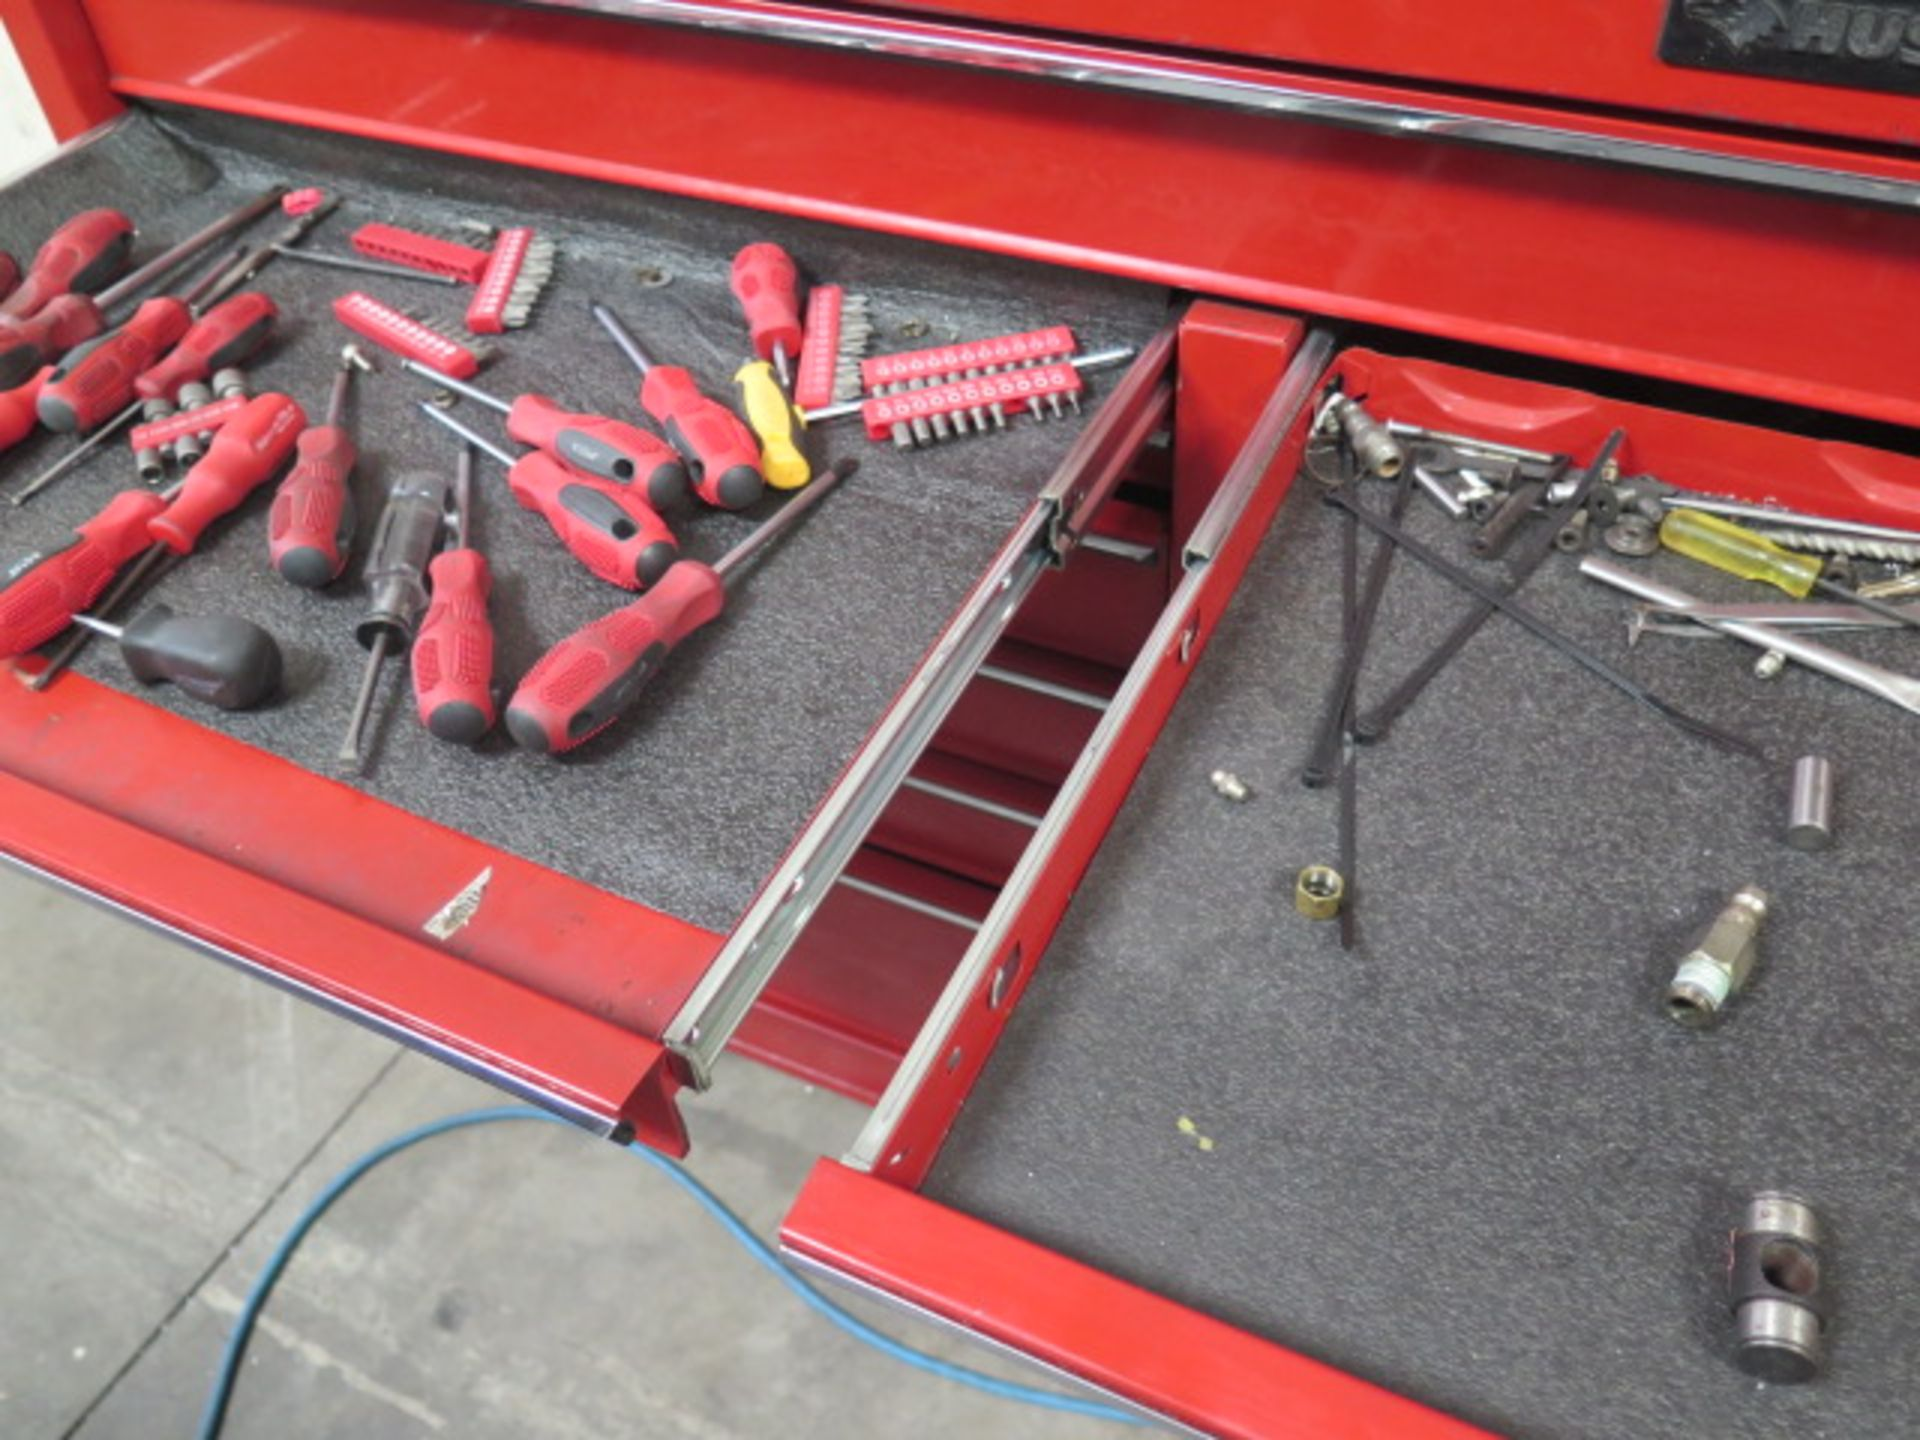 Roll-A-Way Tool Box w/ Misc Tools (SOLD AS-IS - NO WARRANTY) - Image 3 of 6